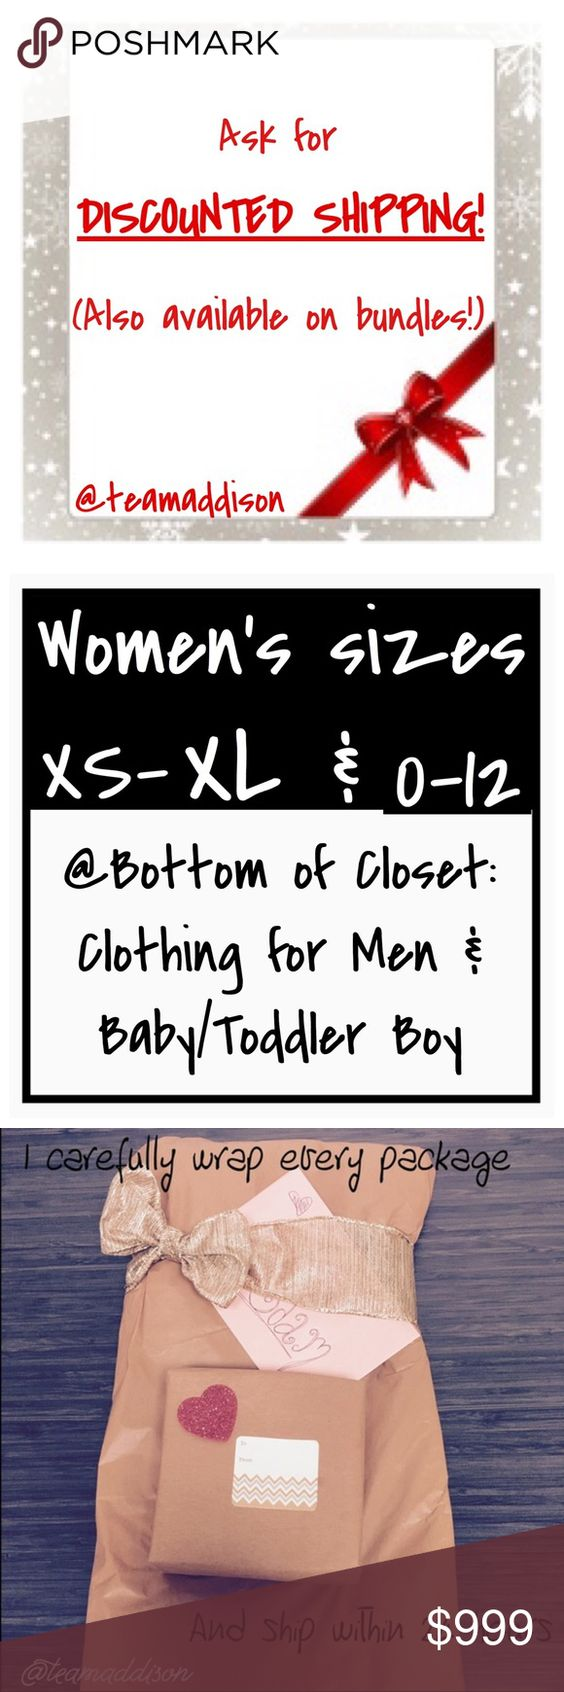 """Ask for DISCOUNTED shipping: valid thru Sun 11 Dec 📦 Same day shipping (excluding Sun/holidays or orders placed after P.O. Closed) ❓Please ask any questions prior to buying. I want you to be 💯% Happy❣  Closet clear out is back! Now through Sunday 11 December ask for discounted shipping! Simply comment on any listing or listings that You're interest in purchasing. I will create a new listing just for you priced high at like $999. Then you """"like"""" the item and when I drop the price it…"""